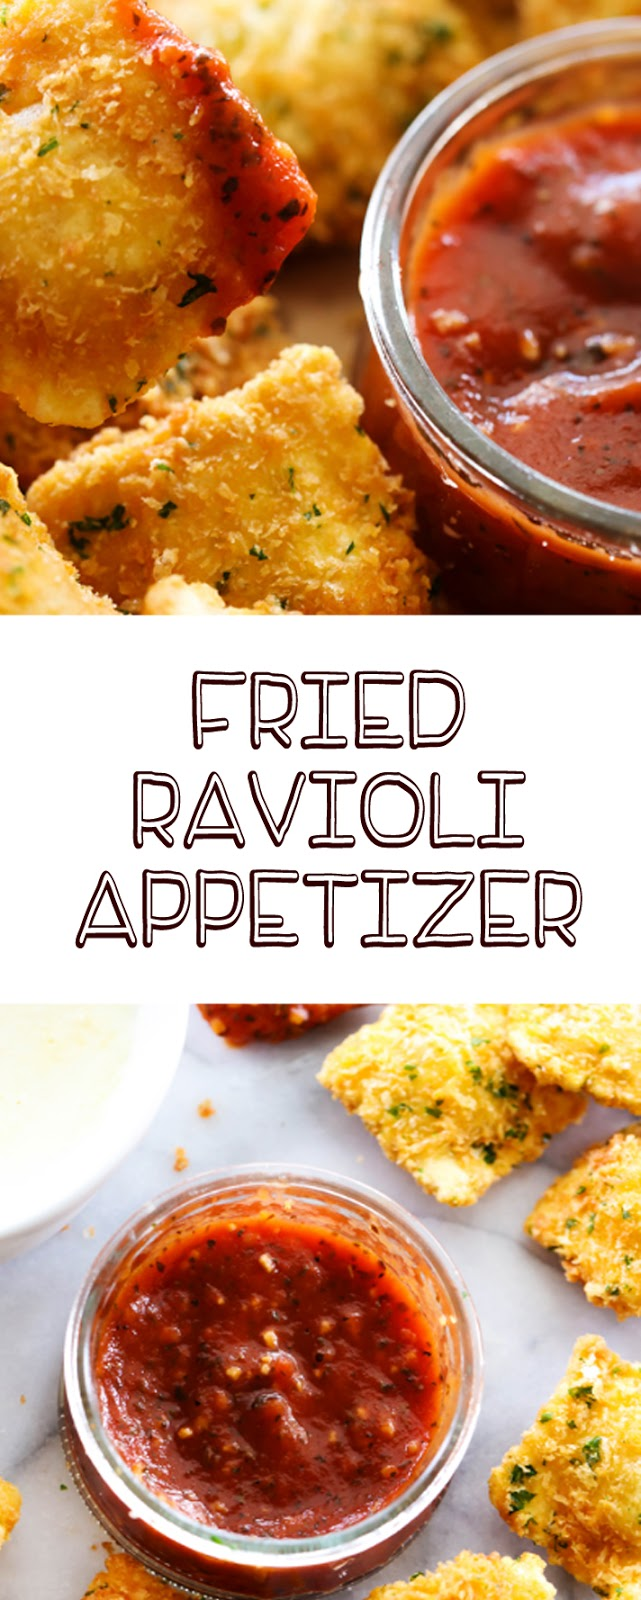 Fried Ravioli Appetizer